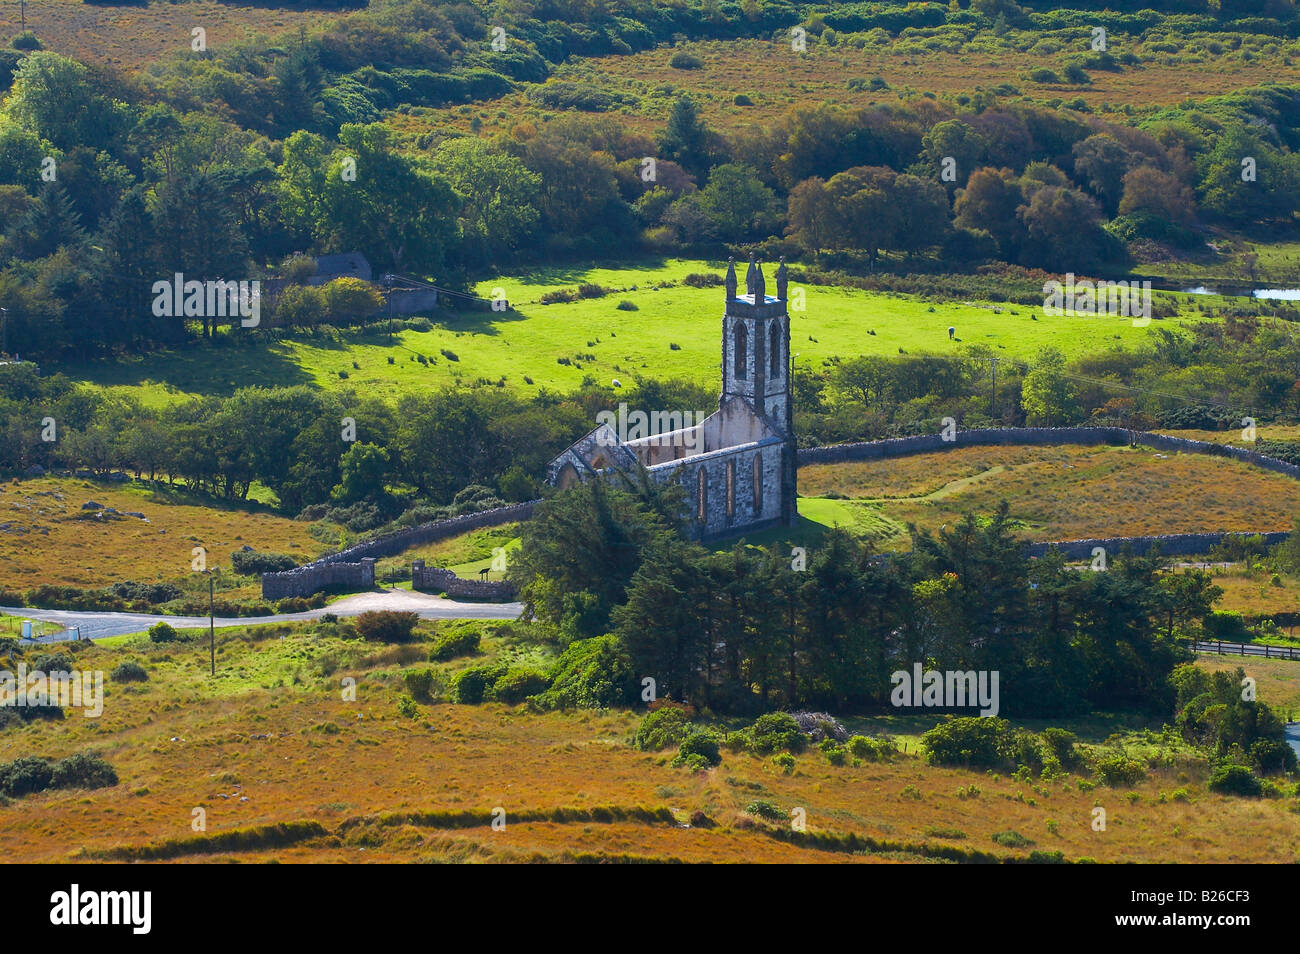 outdoor photo, Dunlewy Church (ruin), County Donegal, Ireland, Europe - Stock Image